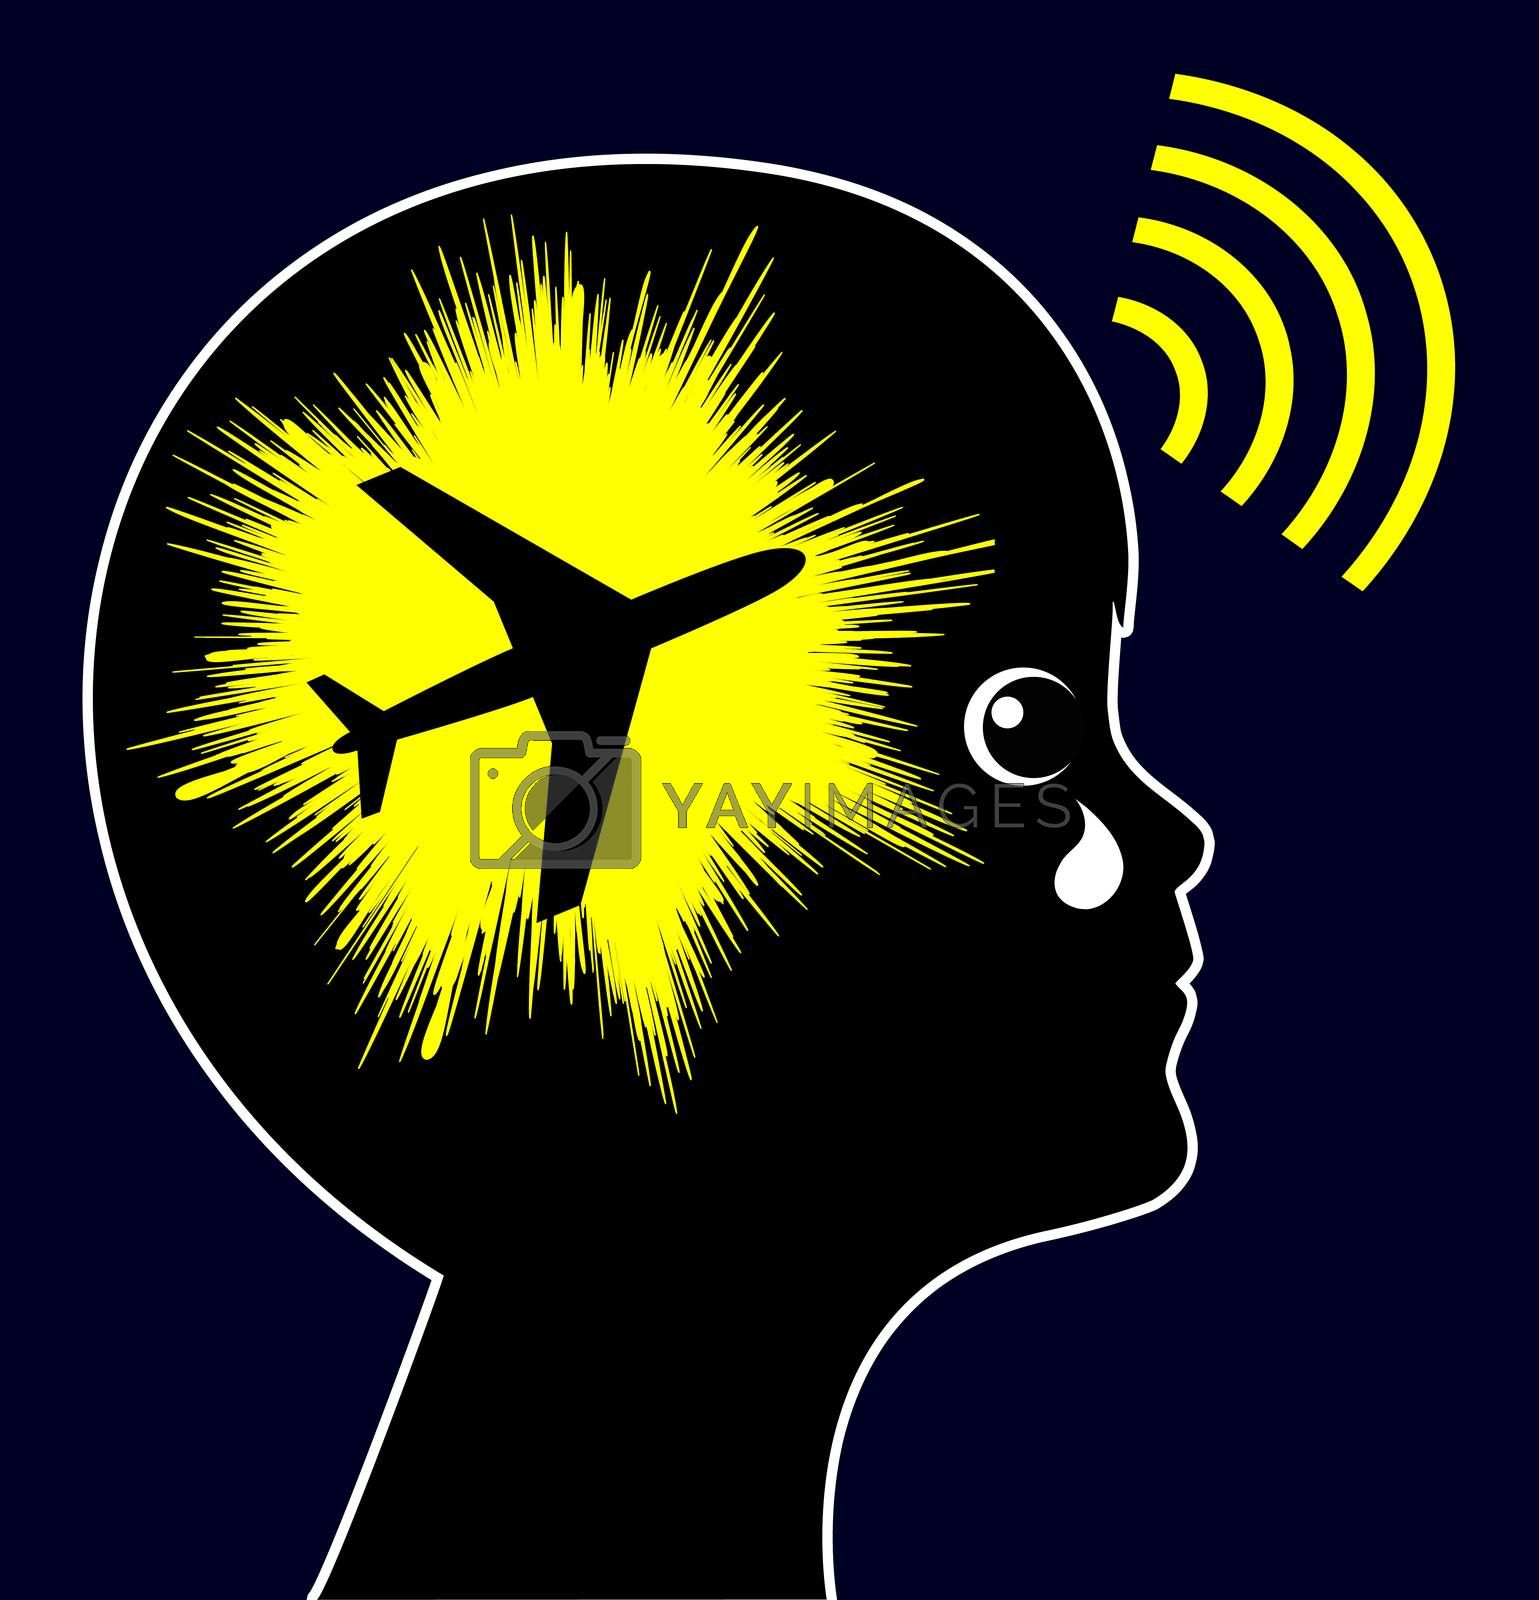 Aircraft Noise Exposure by Bambara